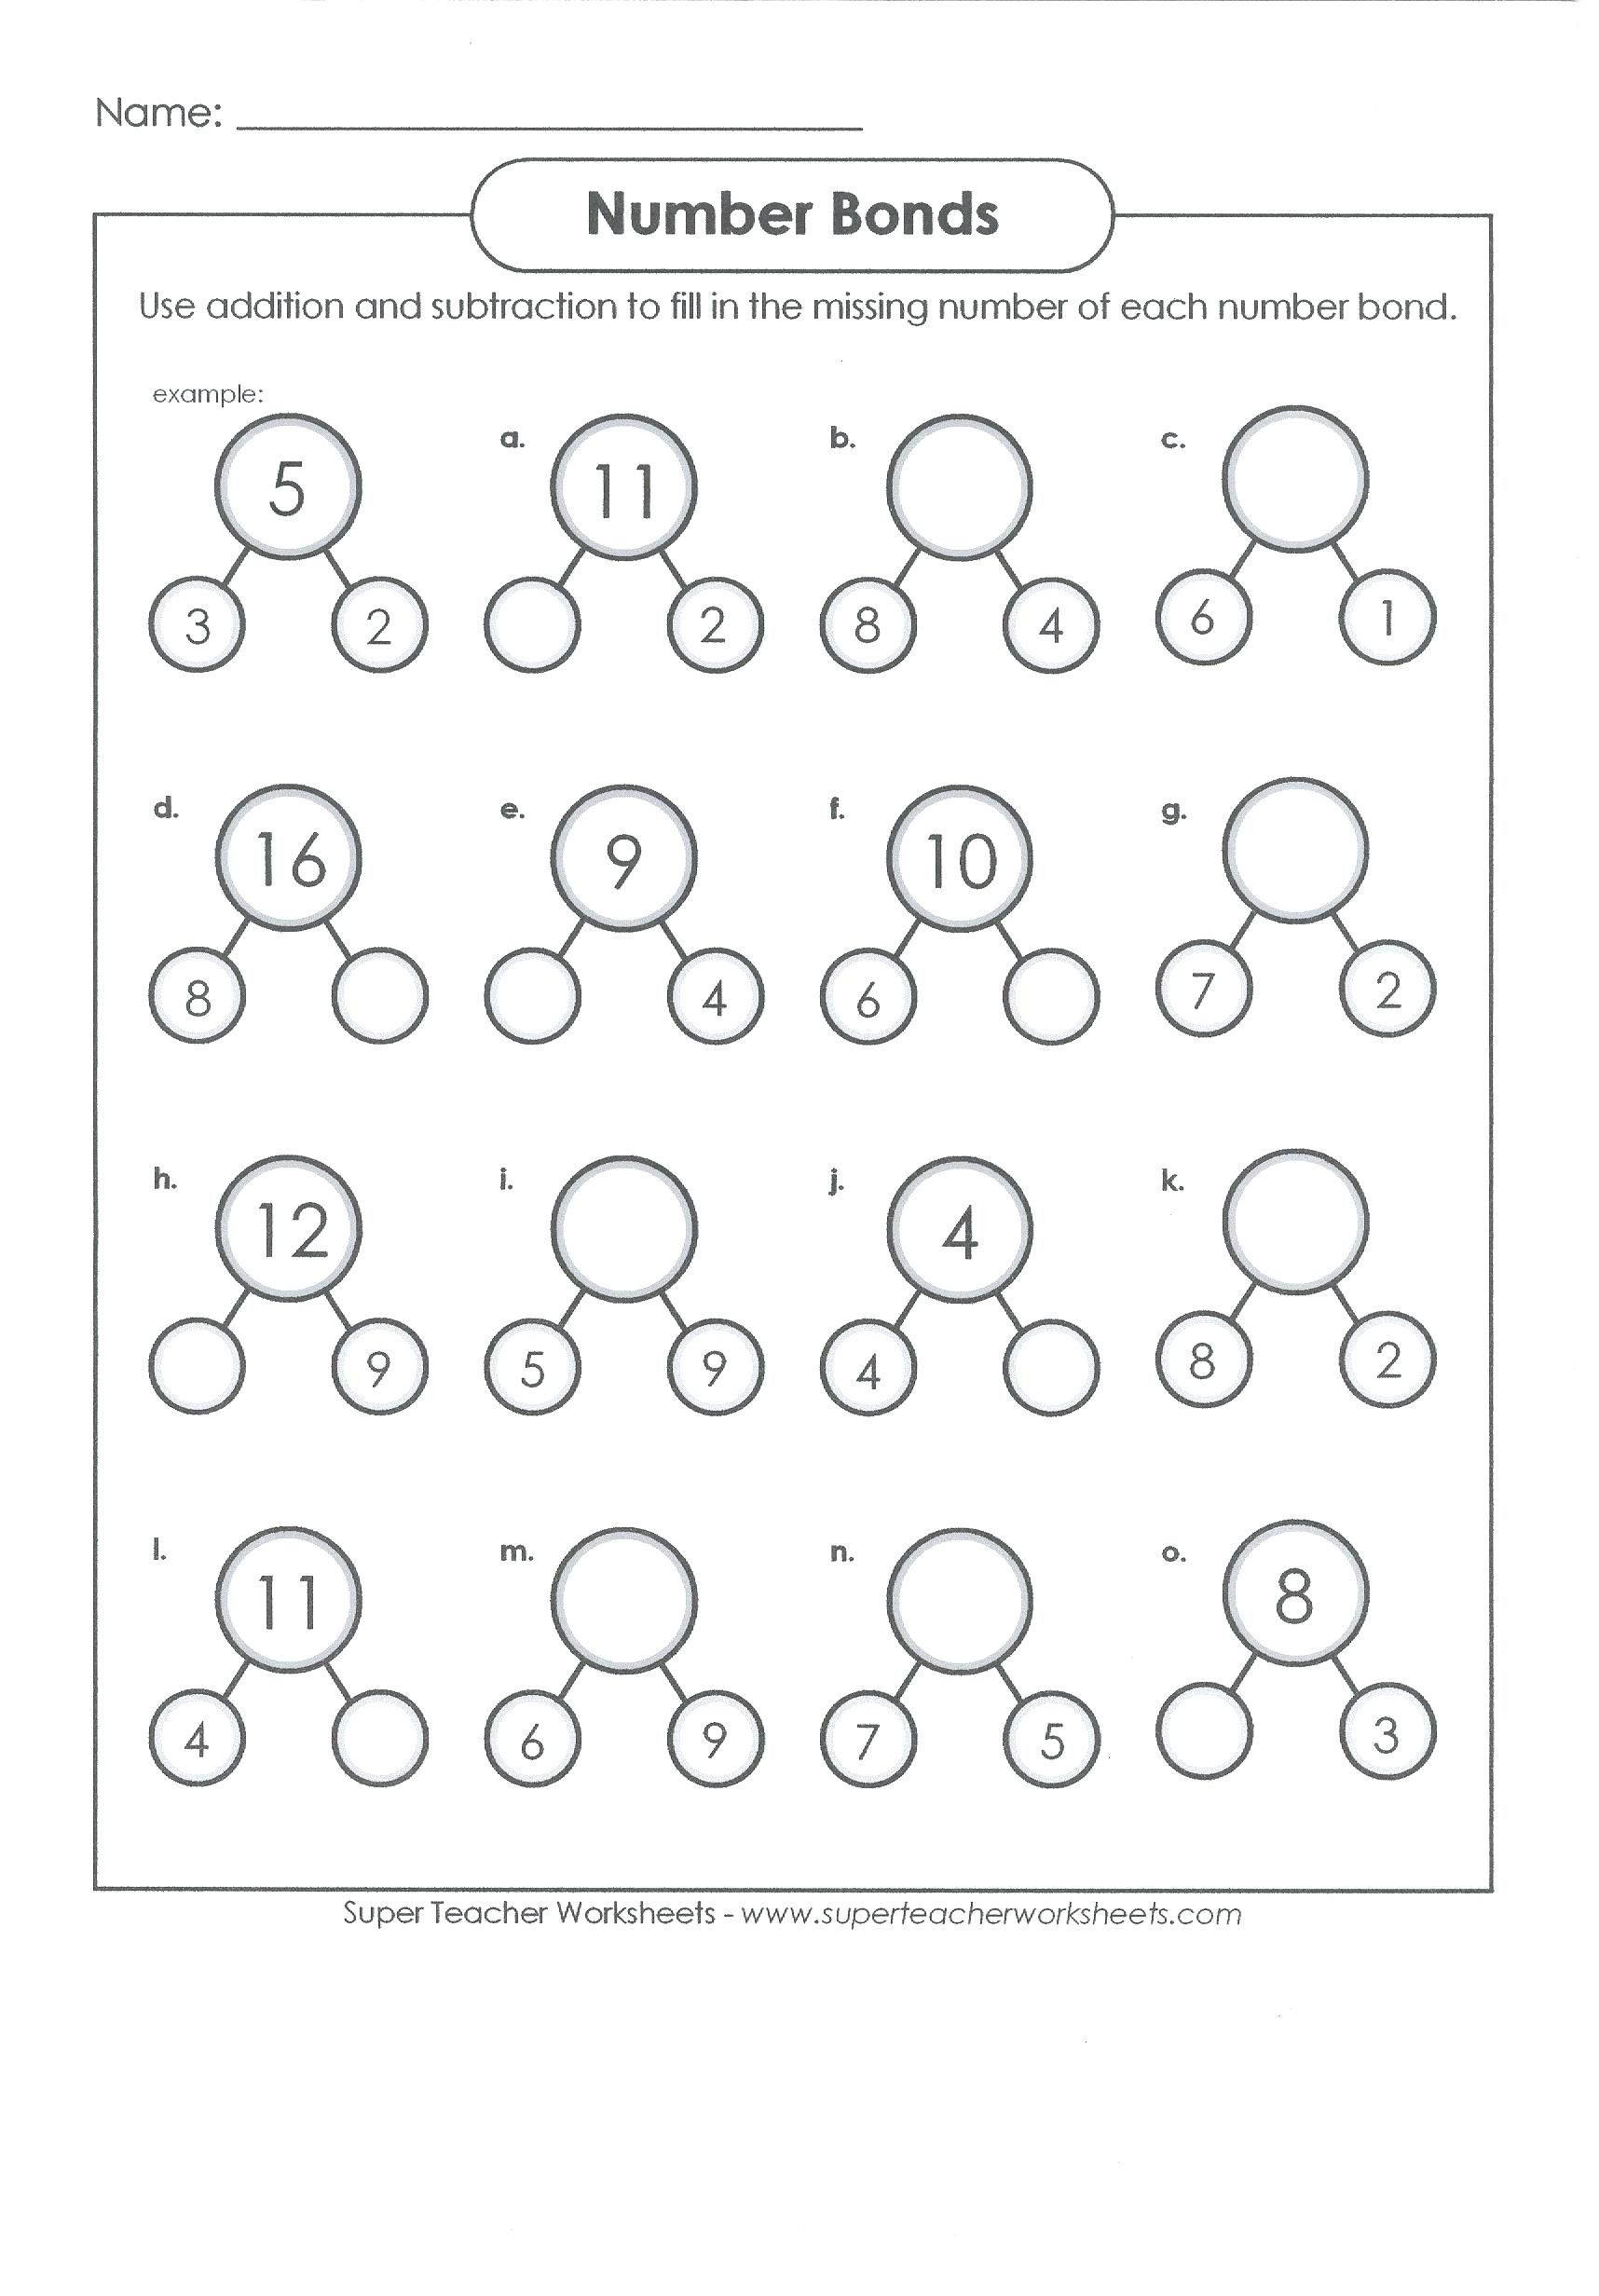 Polygon Worksheets 5th Grade Pin On Educational Worksheets Template